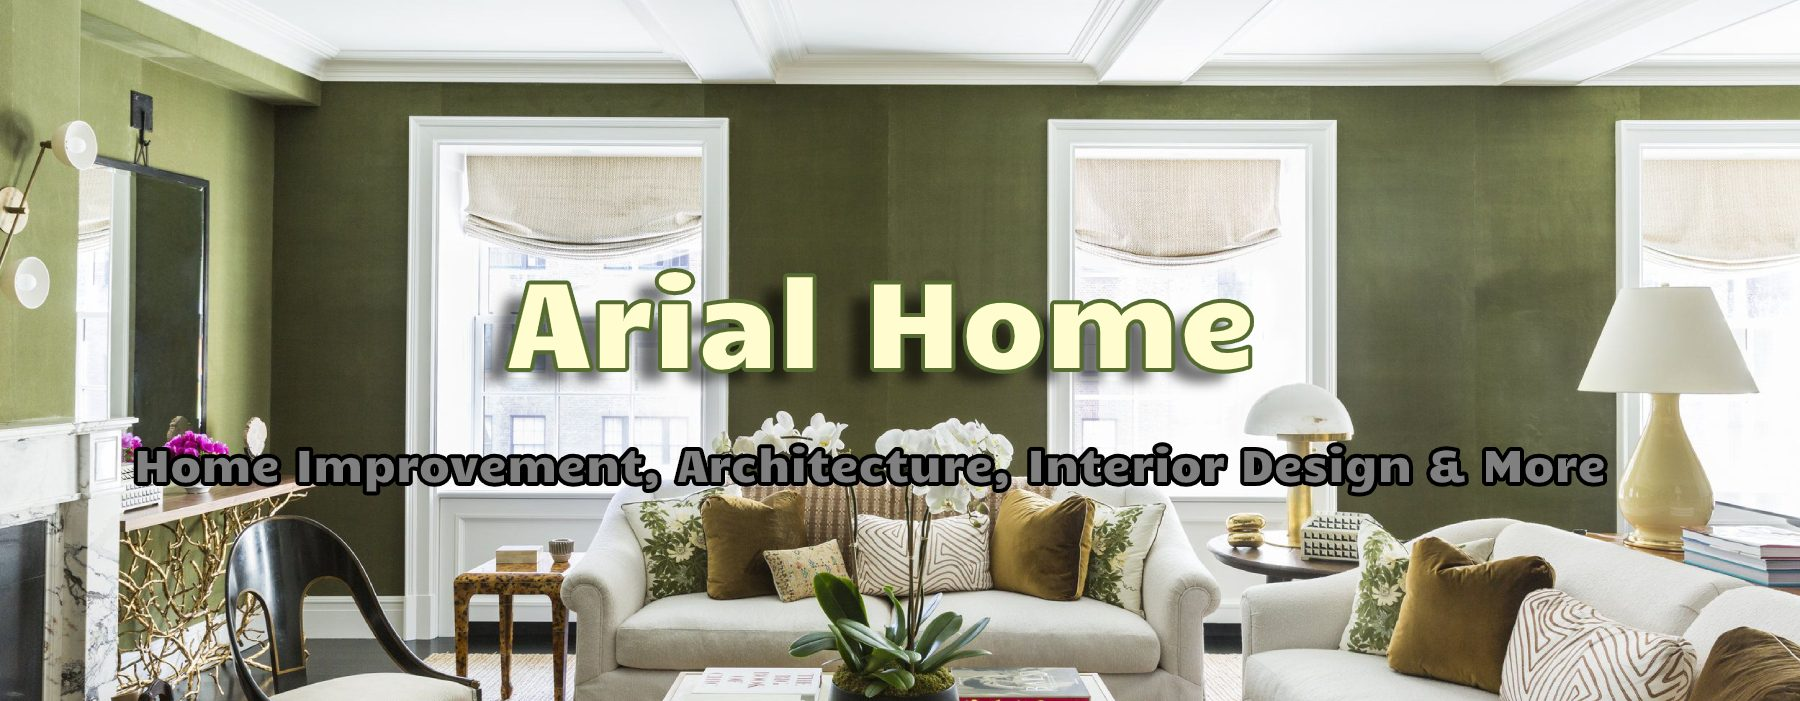 Arial Home